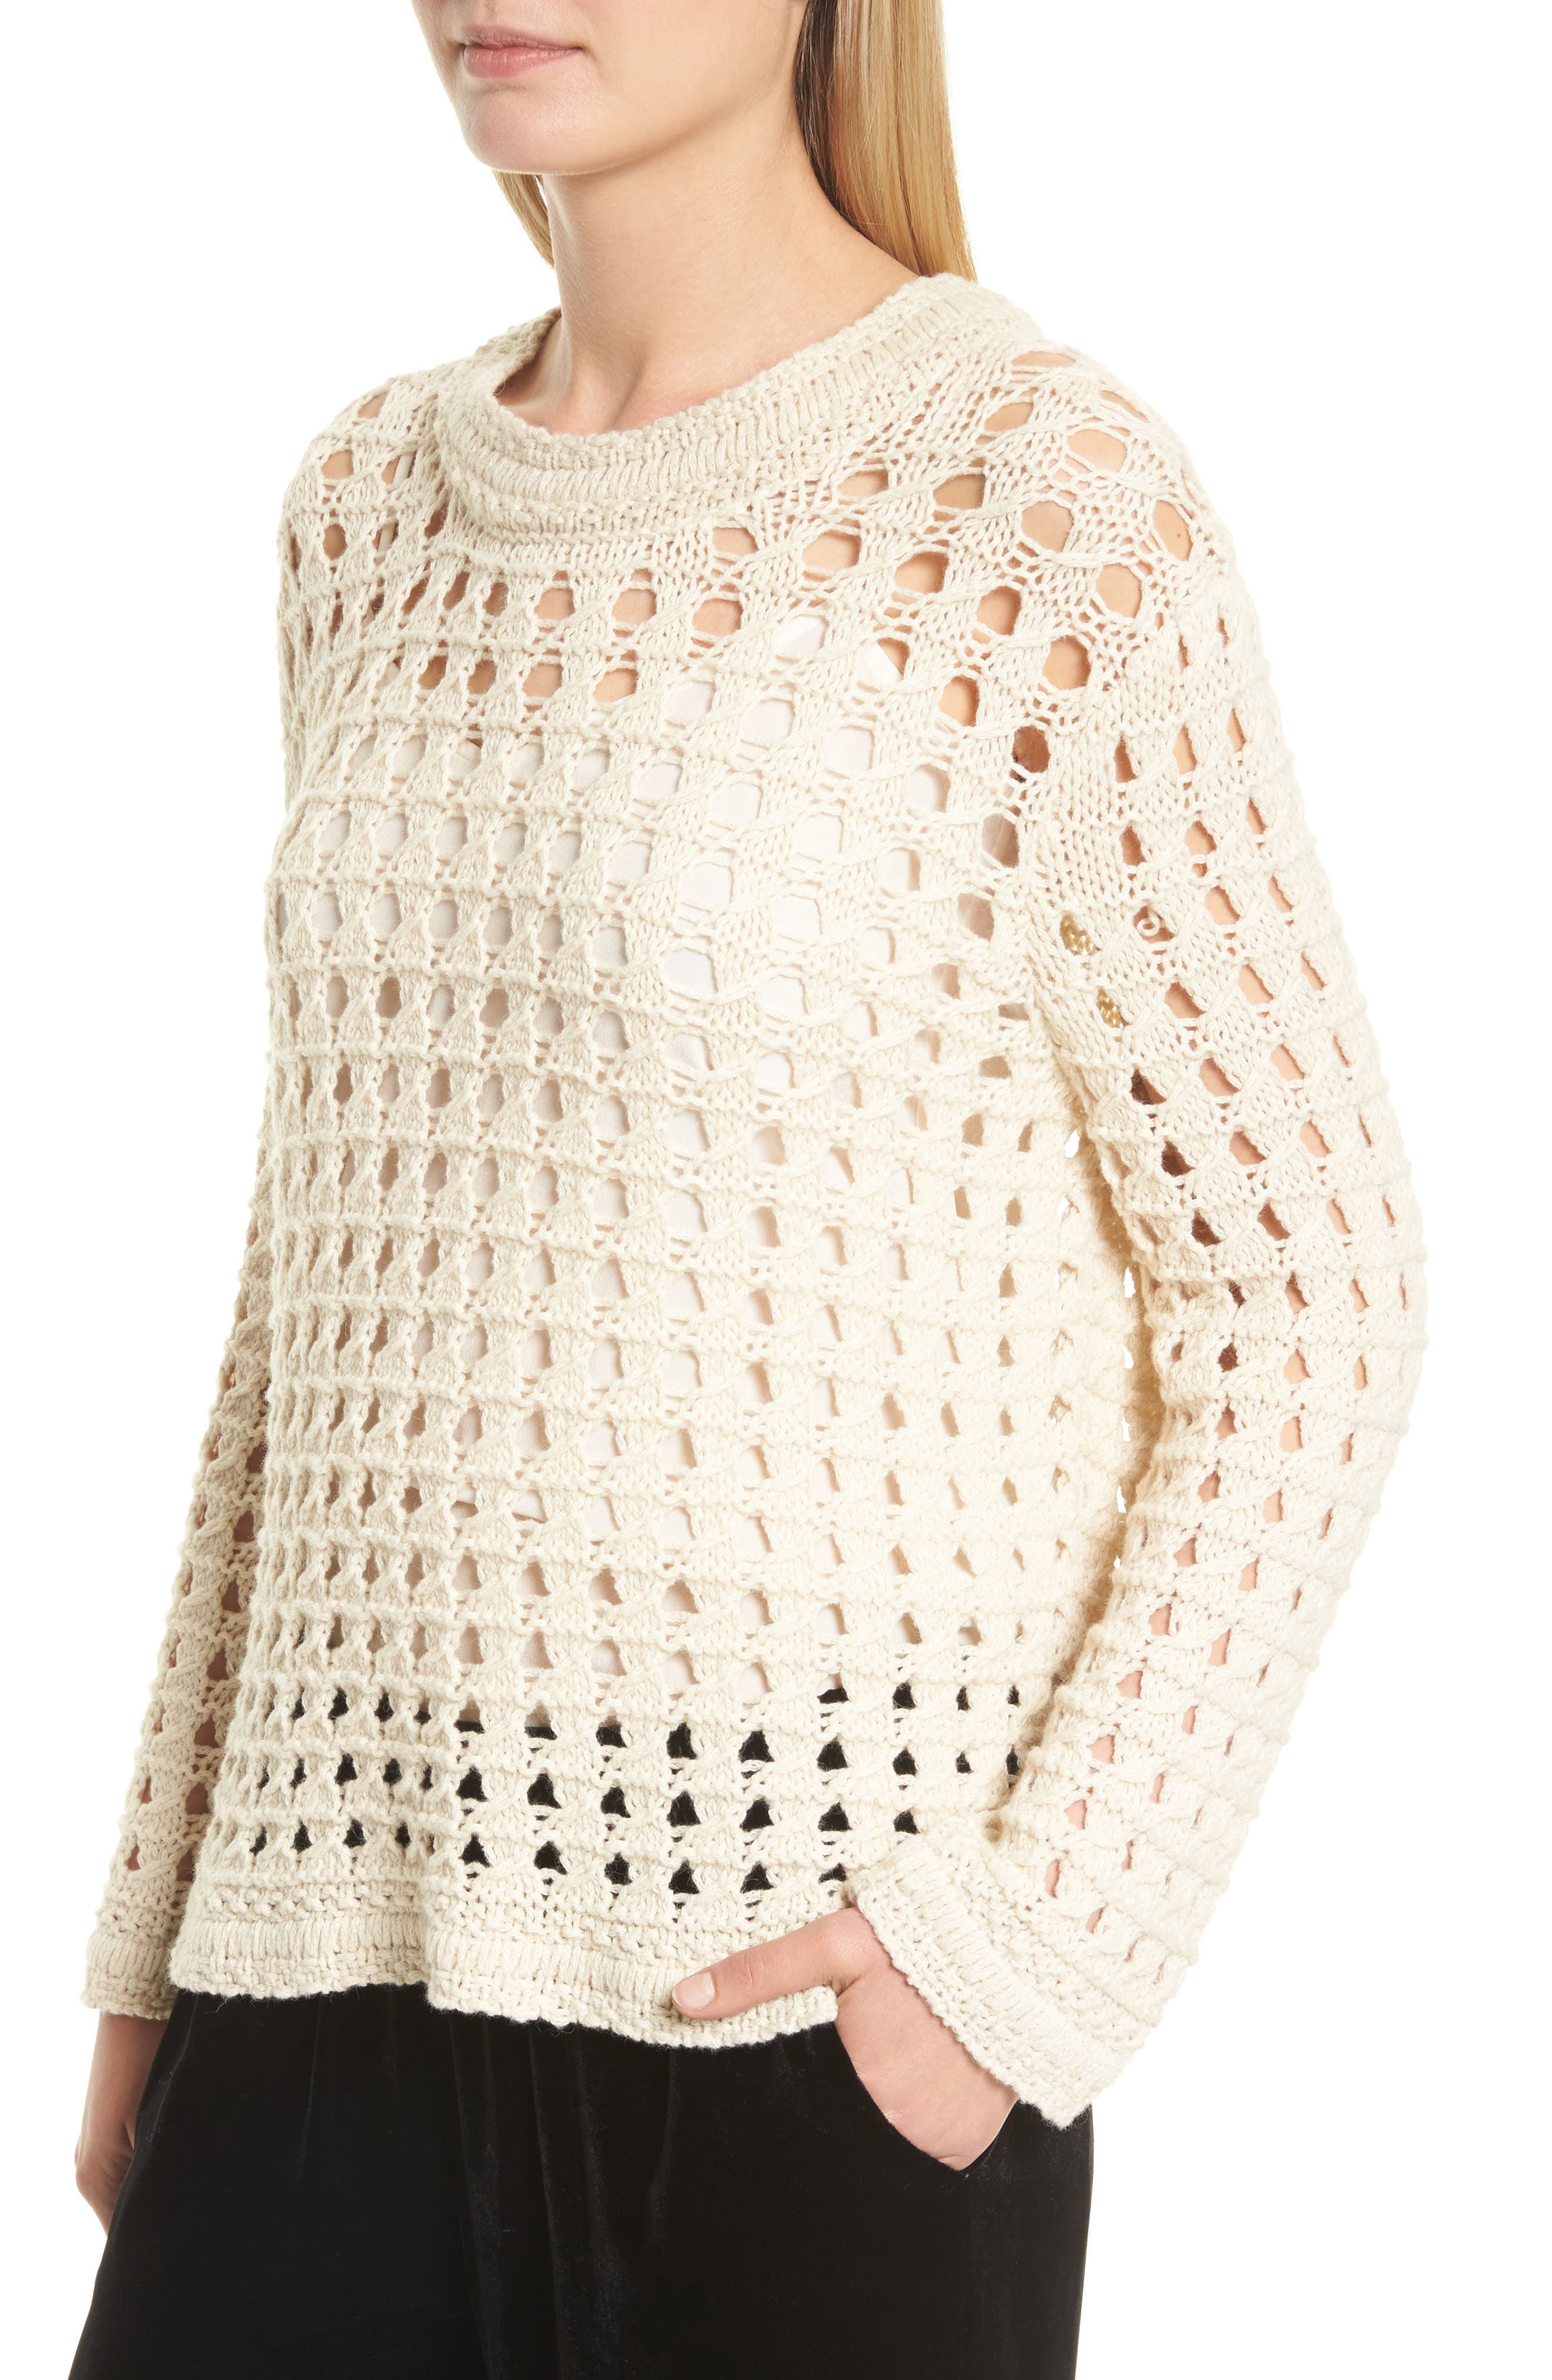 Macha Open Stitch Cotton & Alpaca Sweater,                             Alternate thumbnail 4, color,                             900